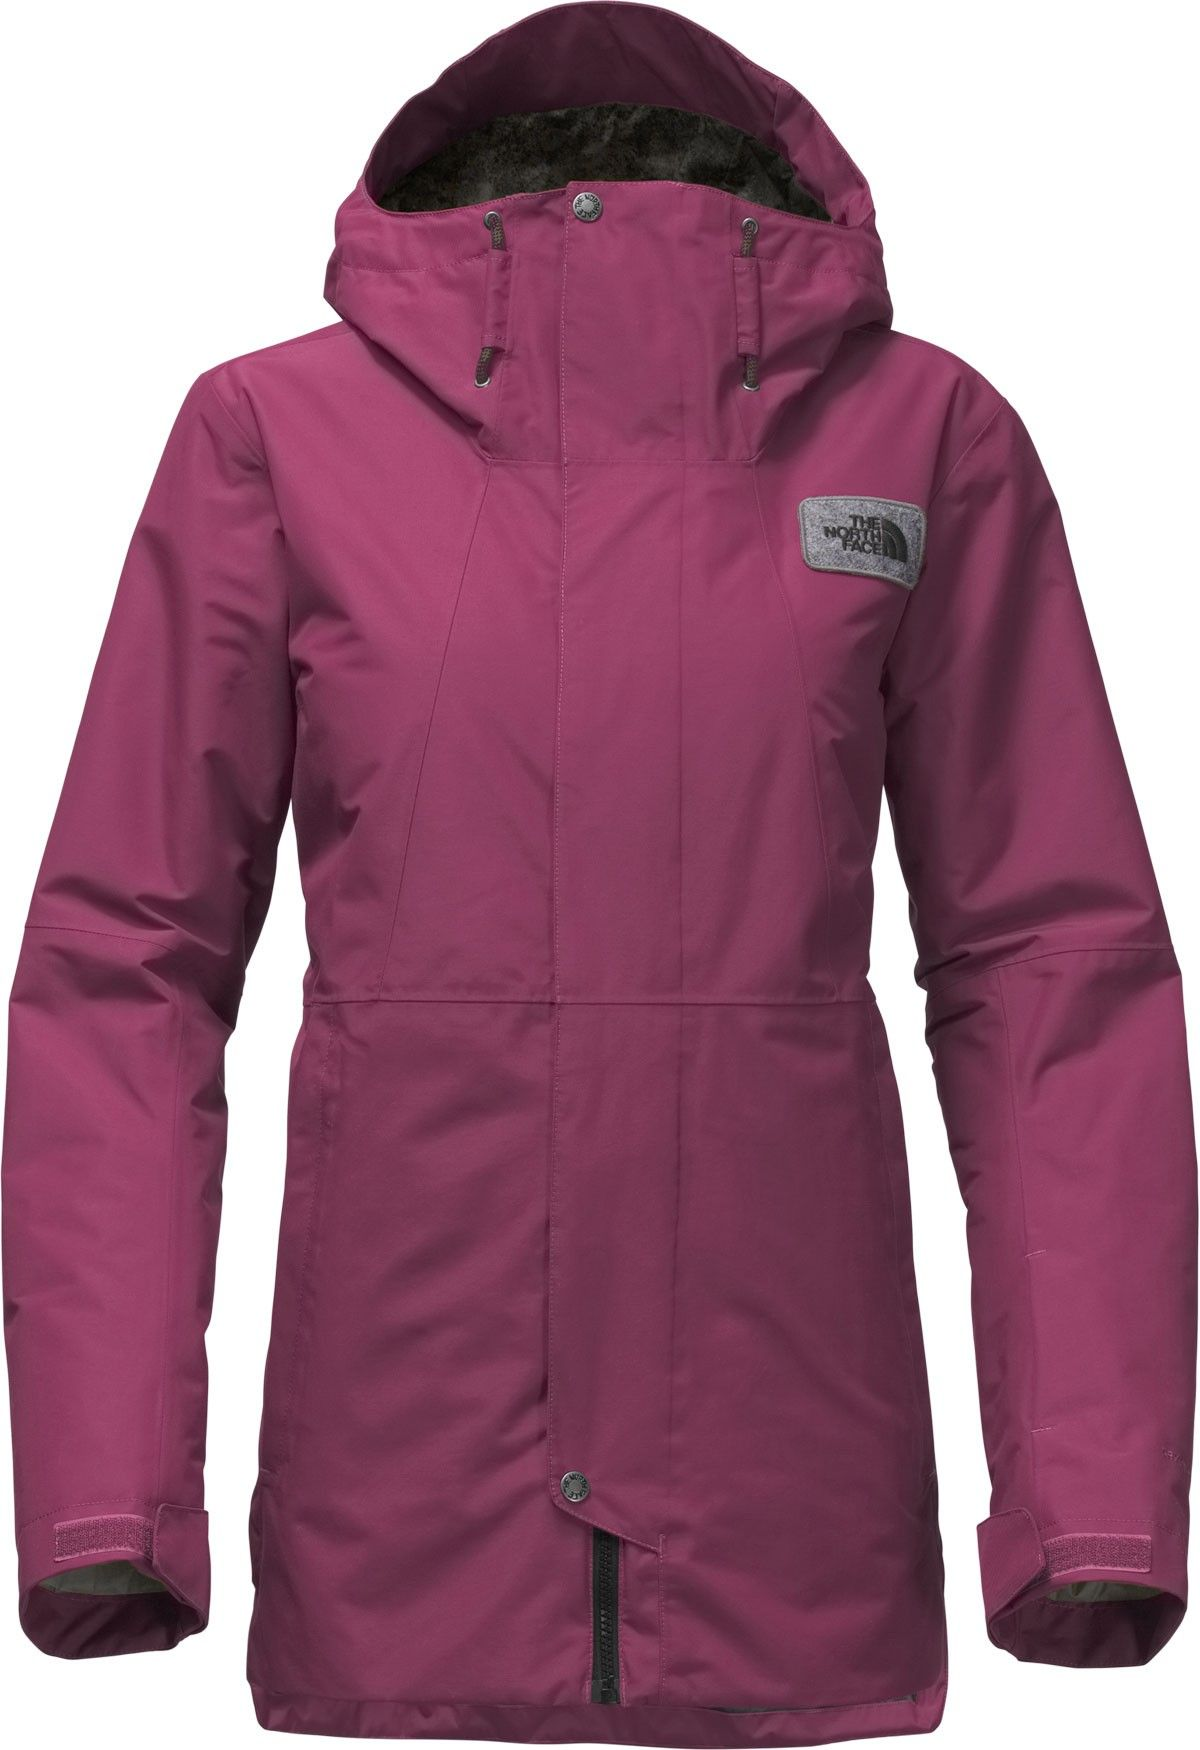 Get The Shot At Any Cost In This Waterproof Lightly Insulated Jacket That Features A Secure Zip Chest Pocket With A North Face Women Insulated Jackets Jackets